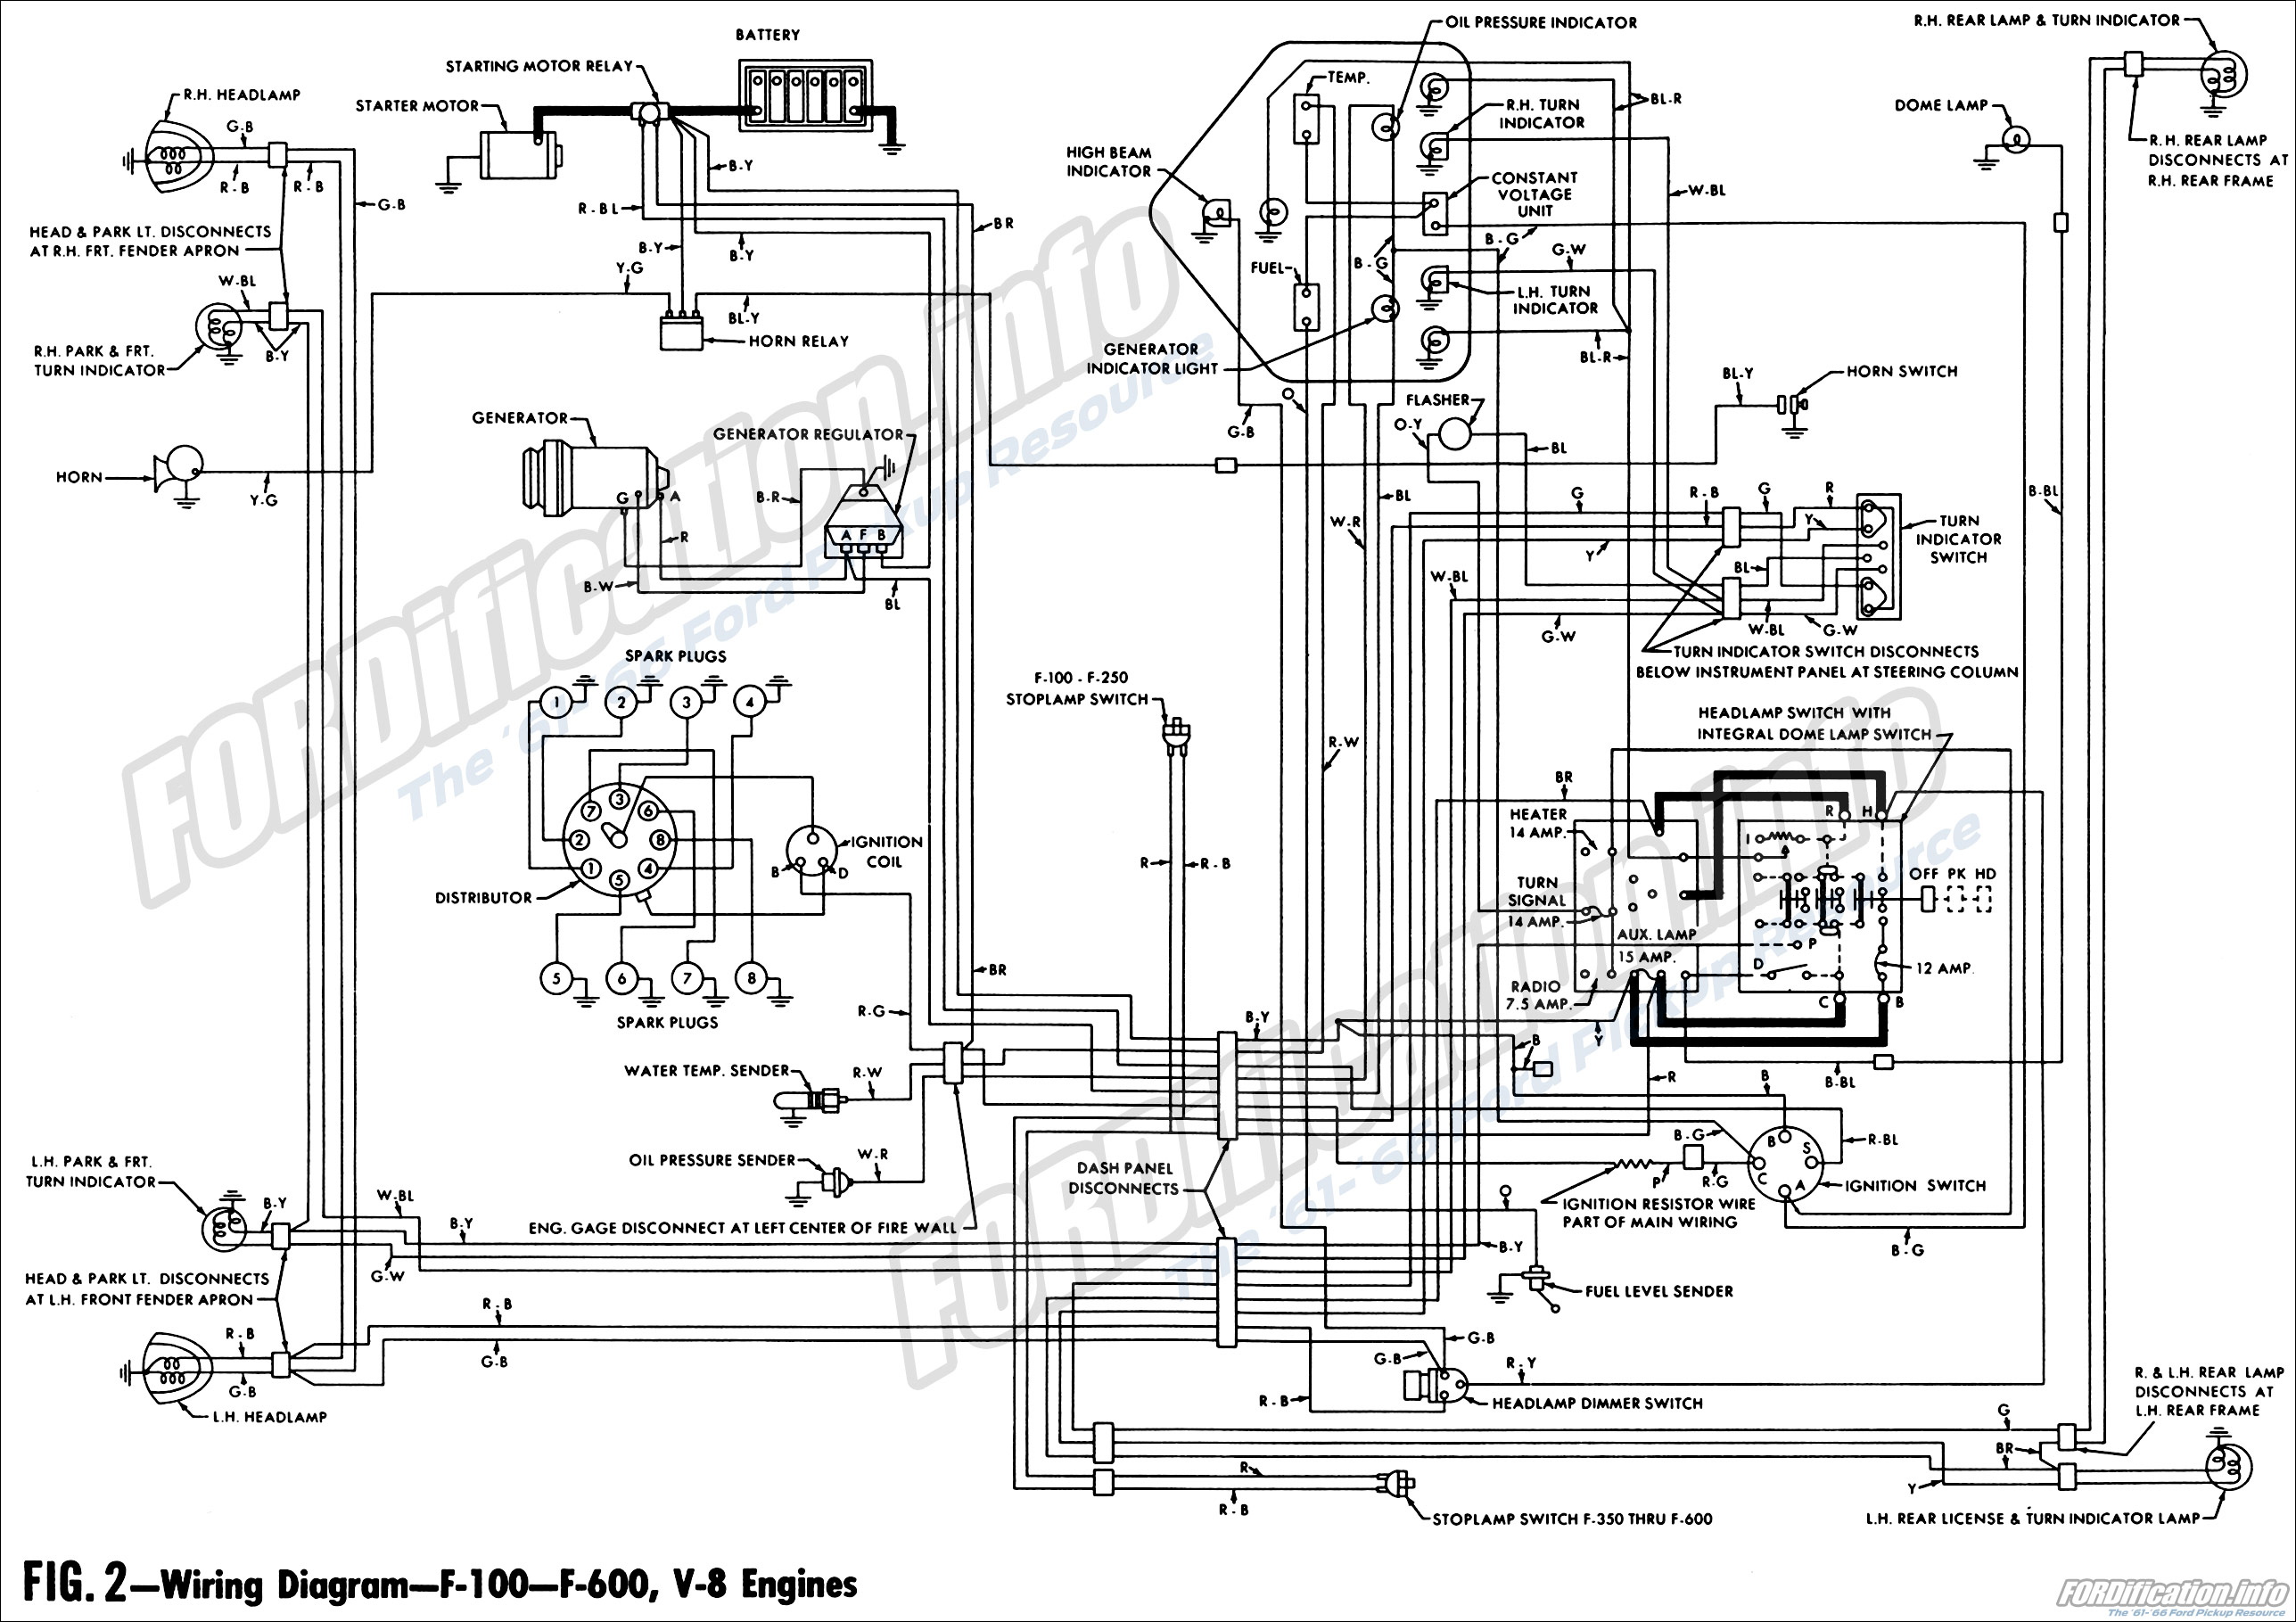 Ford F100 Truck Wiring Diagram As Well Ford Ignition System Wiring